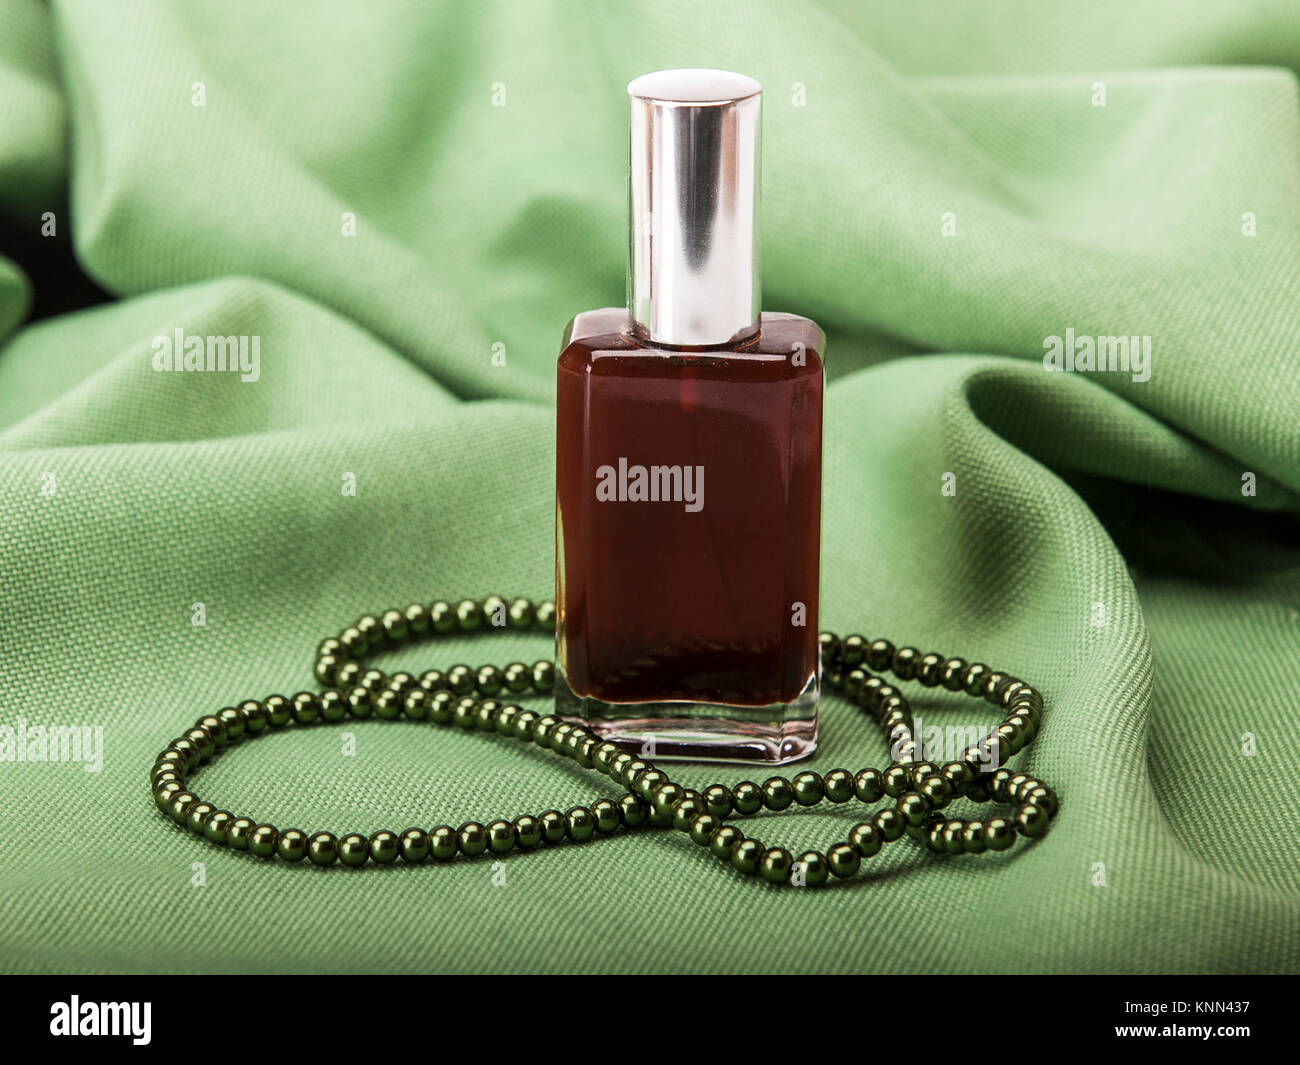 An oil glass bottle full of dark red oil on a green fabric with a